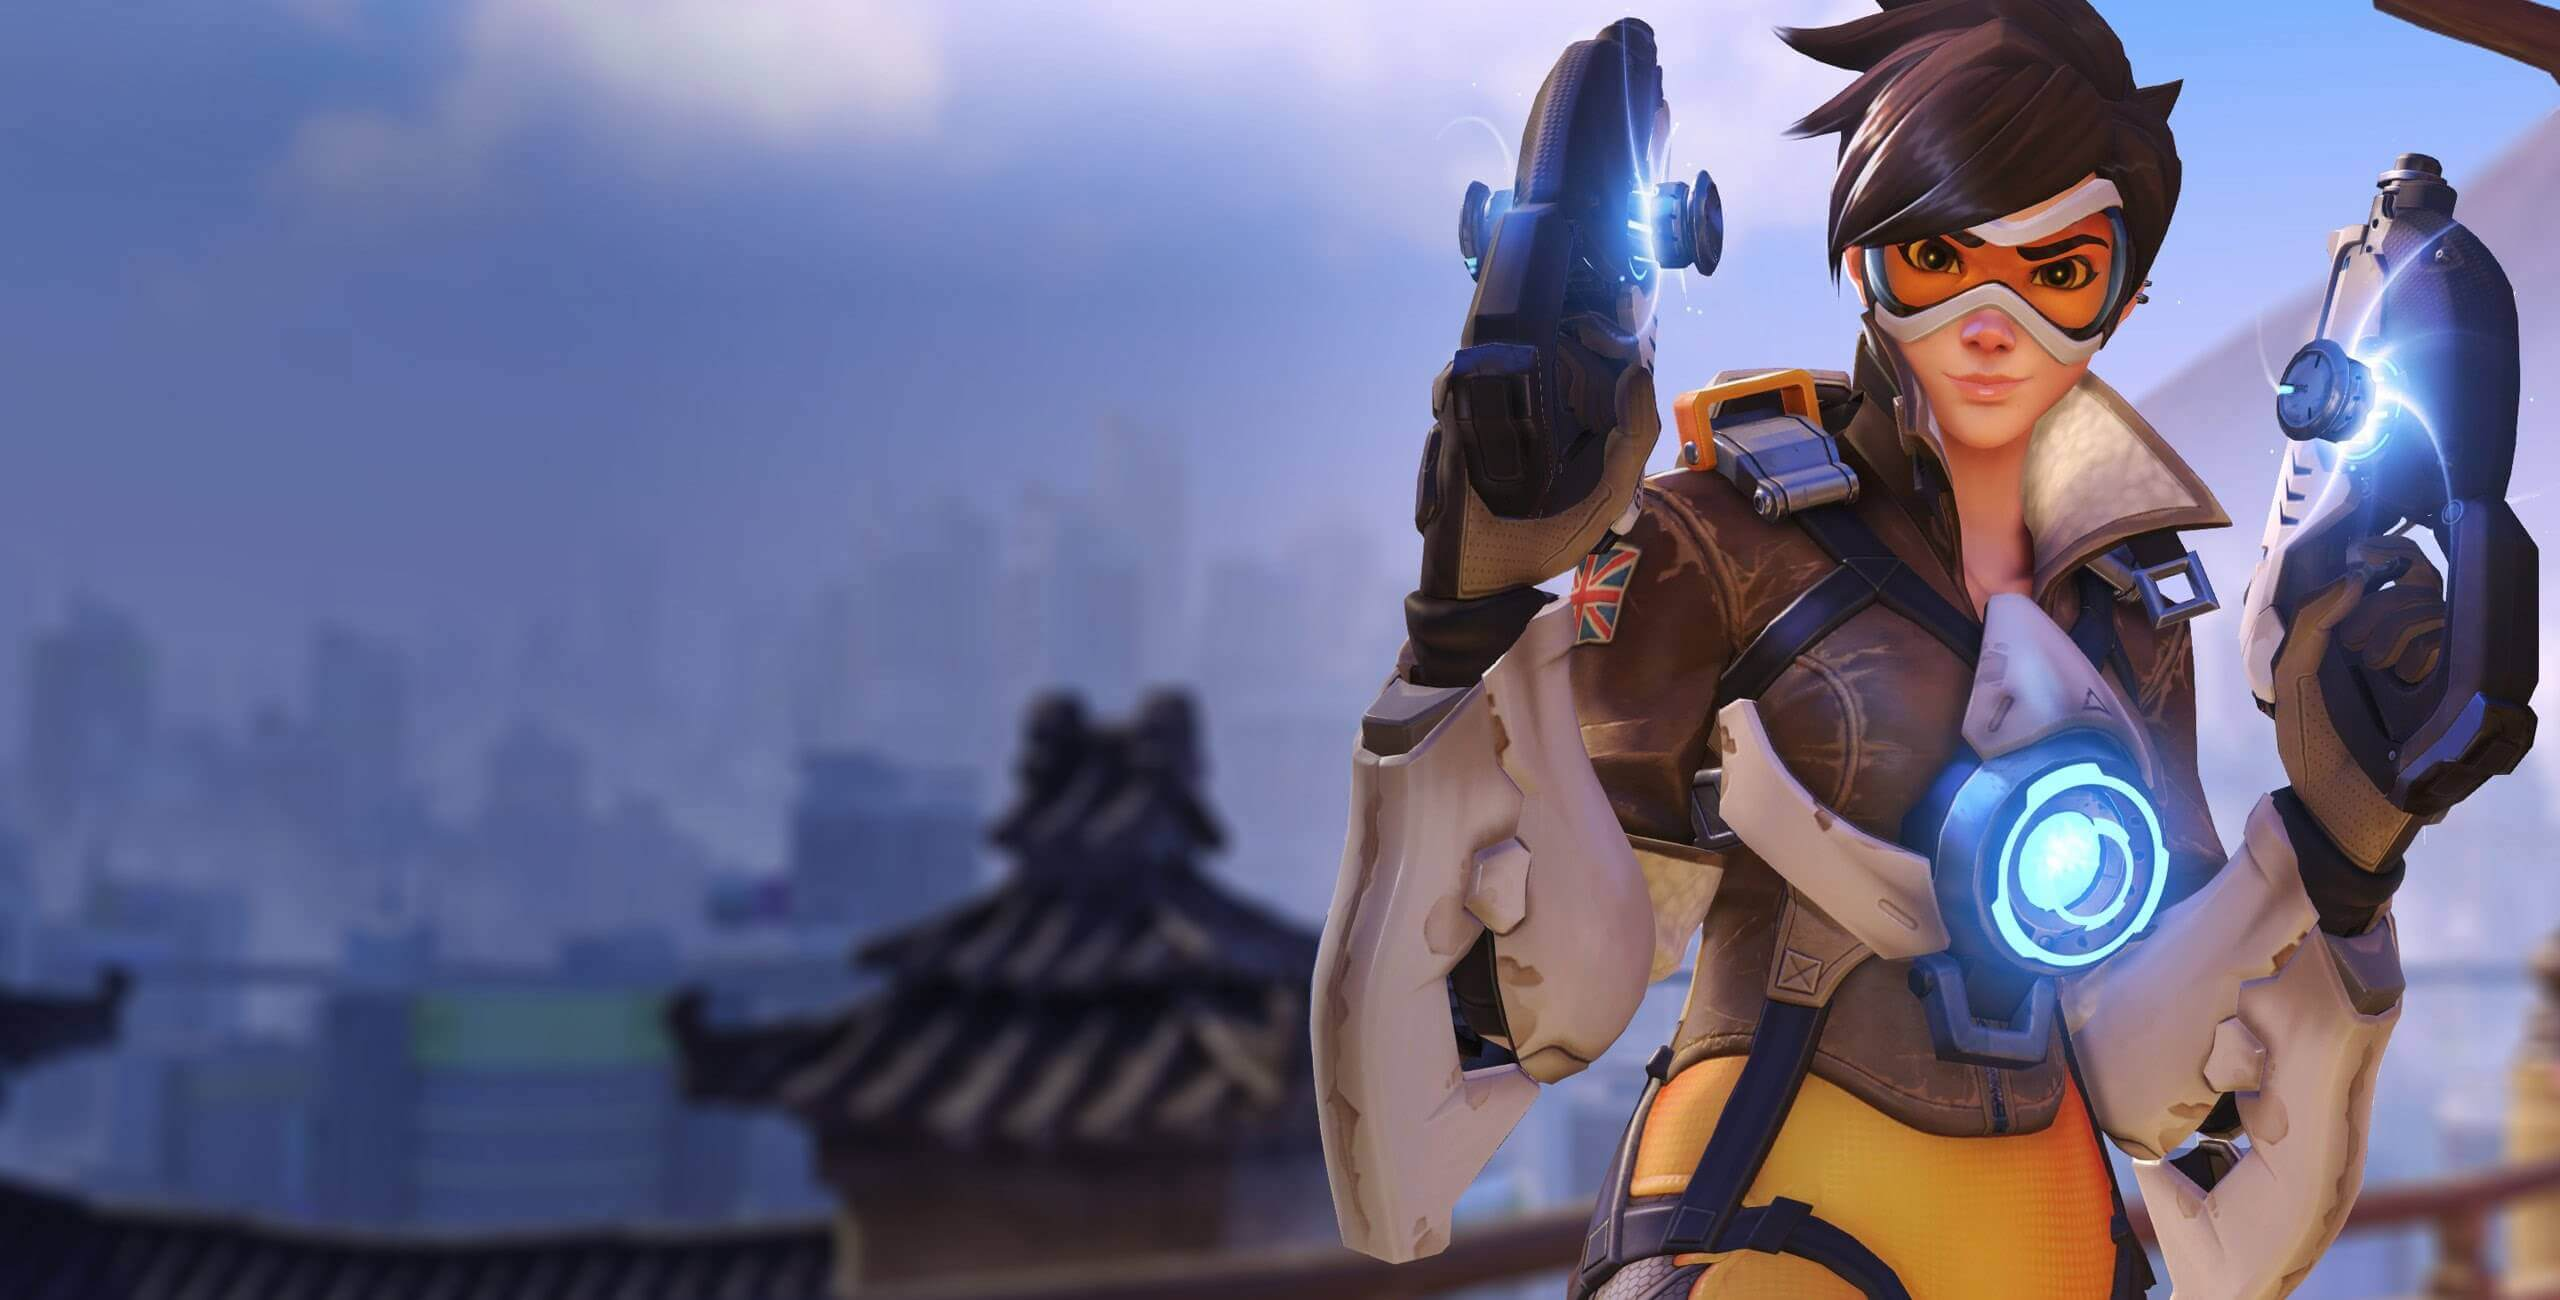 Overwatch trailer a 2014-es BlizzCon-ról